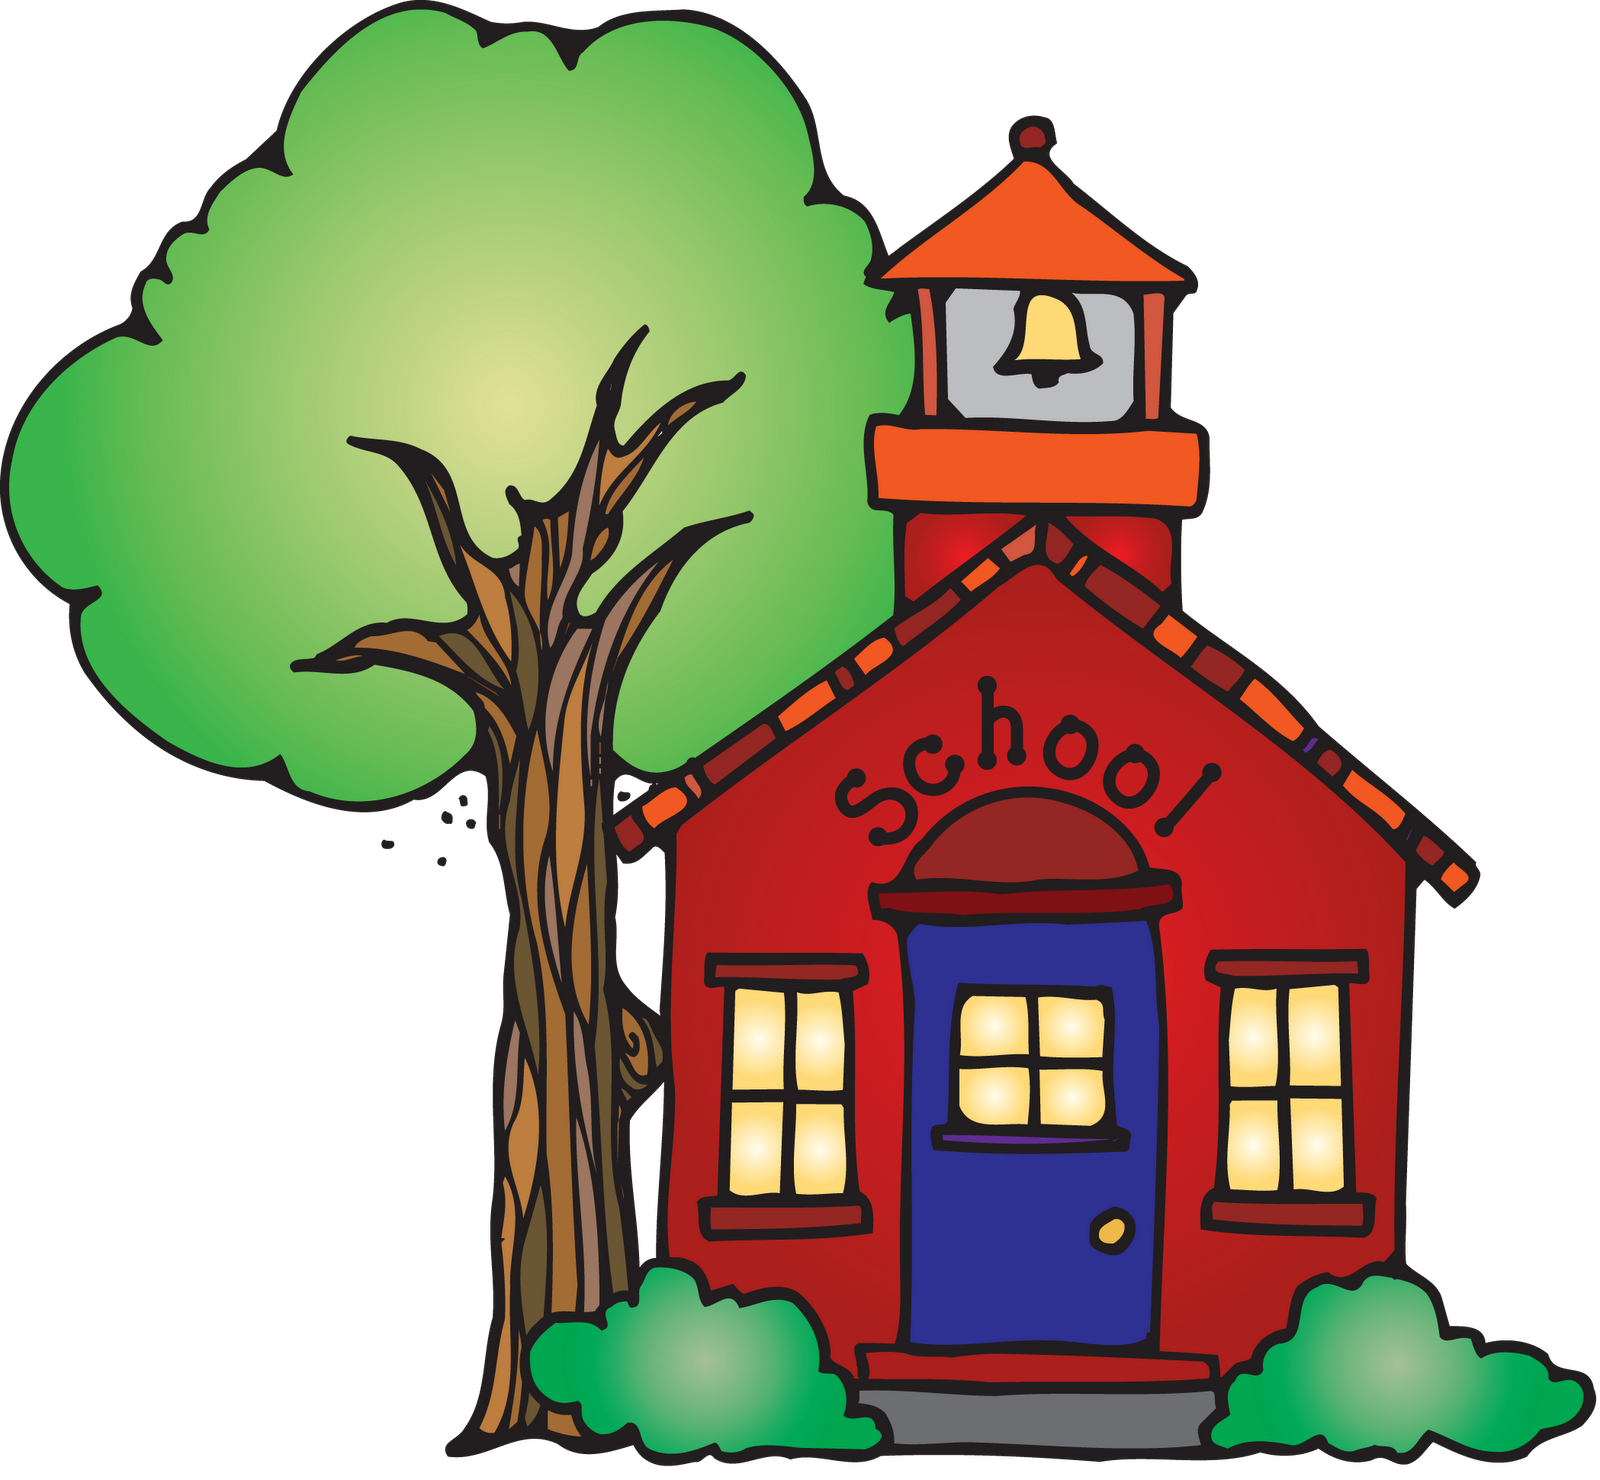 Wee world about has. Schoolhouse clipart preschool newsletter